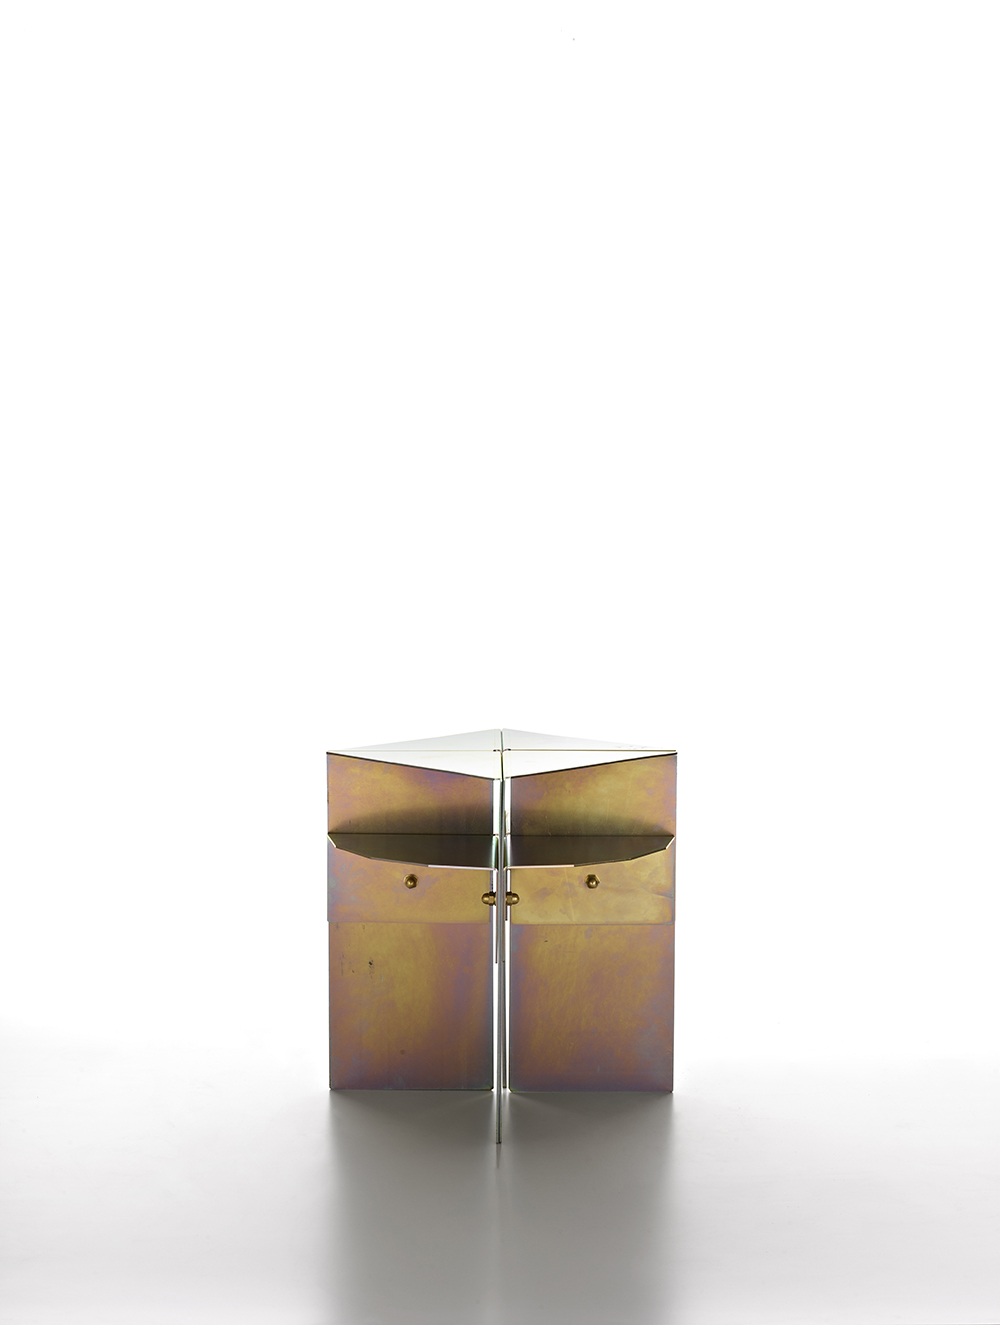 BrooksbankCollins_Carbo Flavus_Side Table_Yellow Passivated_2